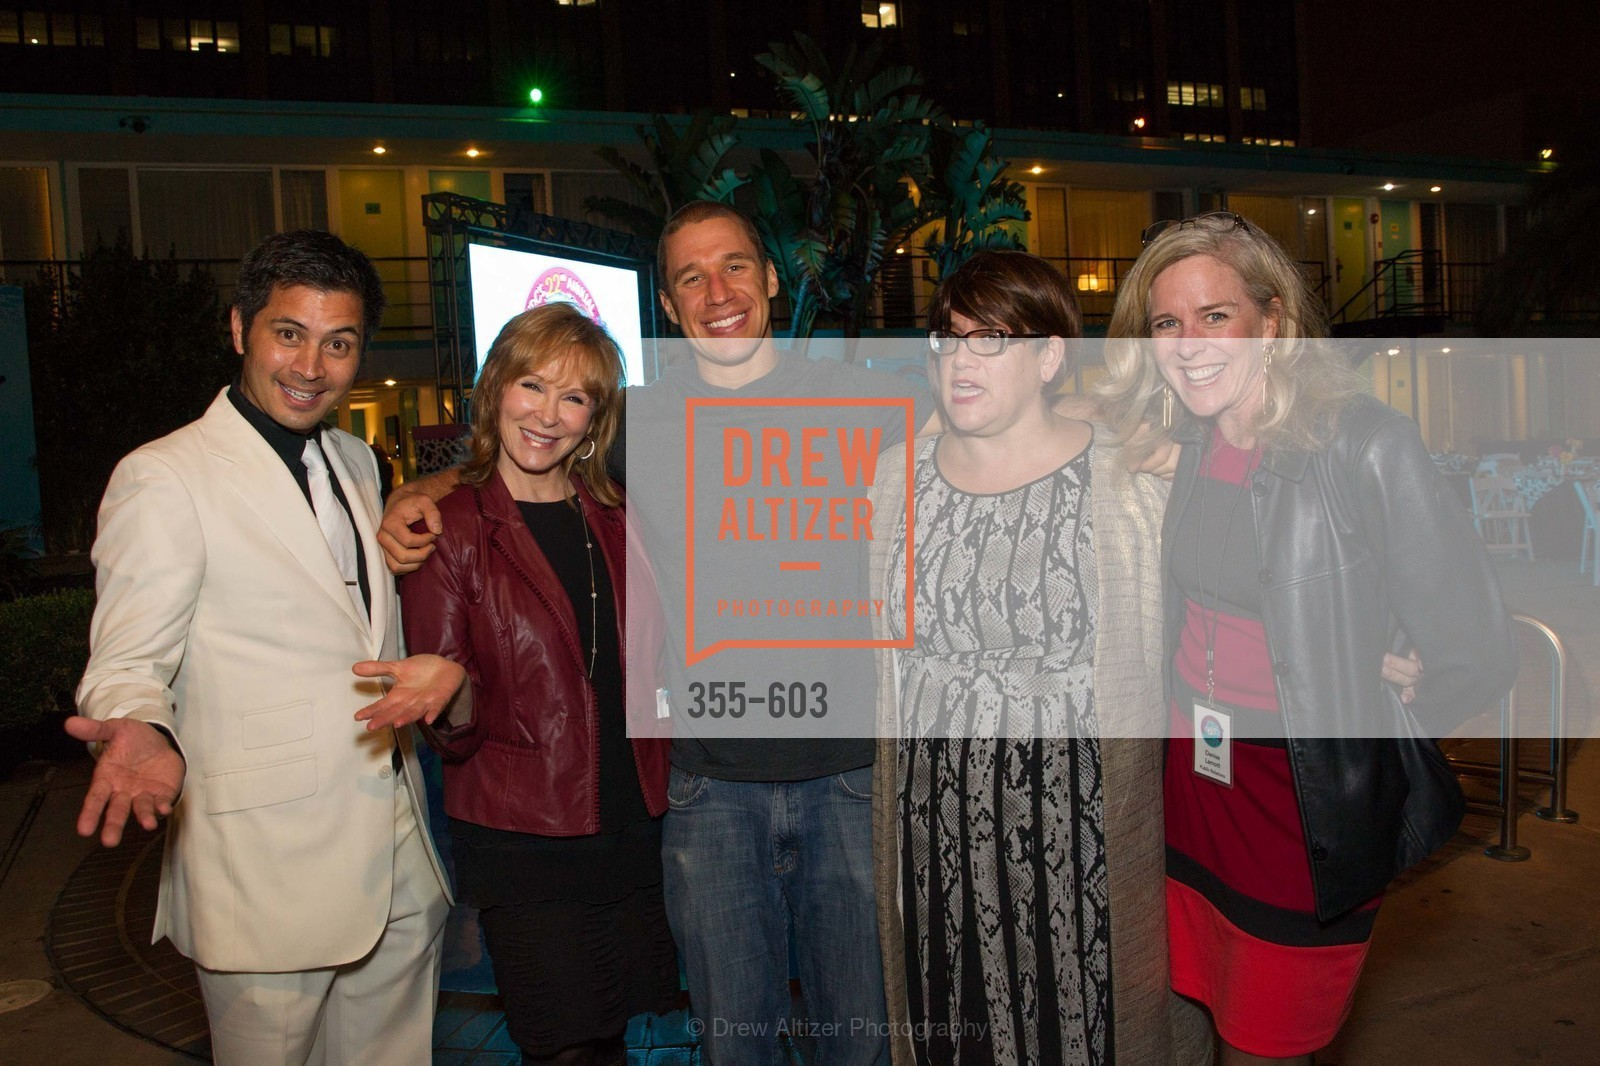 Rafael Musni, Cheryl Jennings, AJ Kirsch, Denise Lamott, 22nd Annual TNDC CELEBRITY POOL TOSS, US, October 8th, 2014,Drew Altizer, Drew Altizer Photography, full-service agency, private events, San Francisco photographer, photographer california